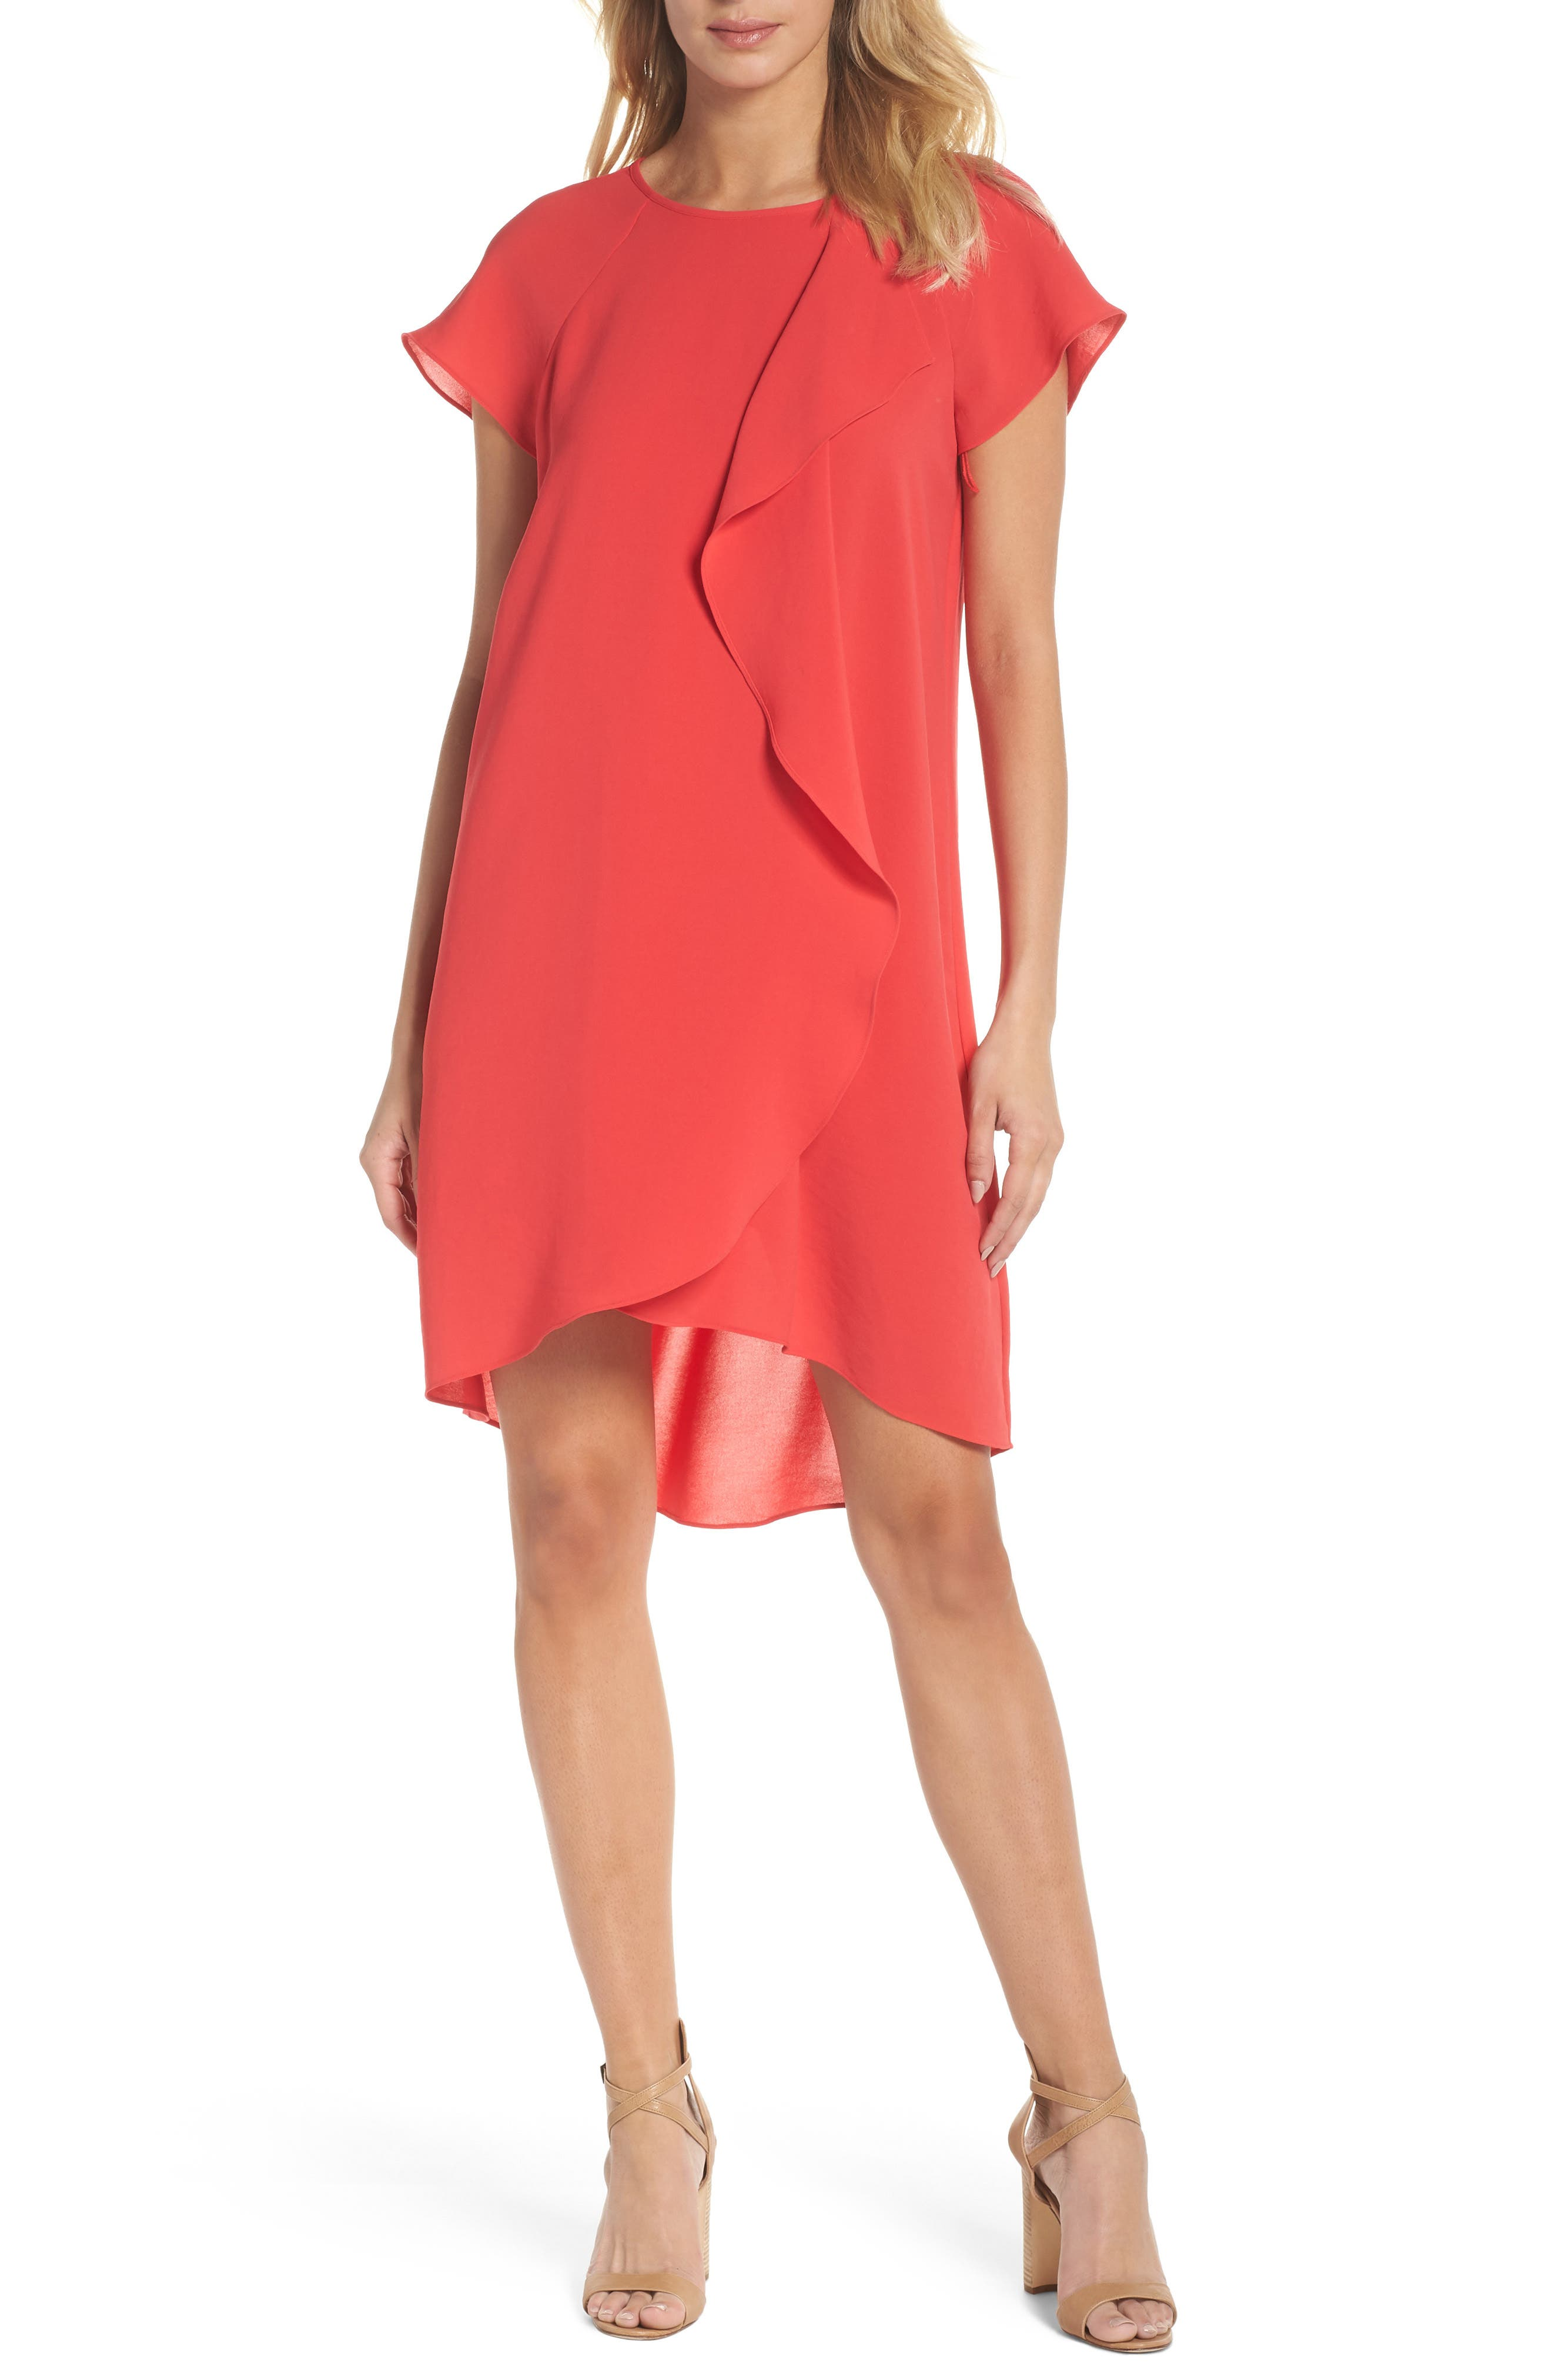 ADRIANNA PAPELL Crepe Shift Dress, Main, color, 650